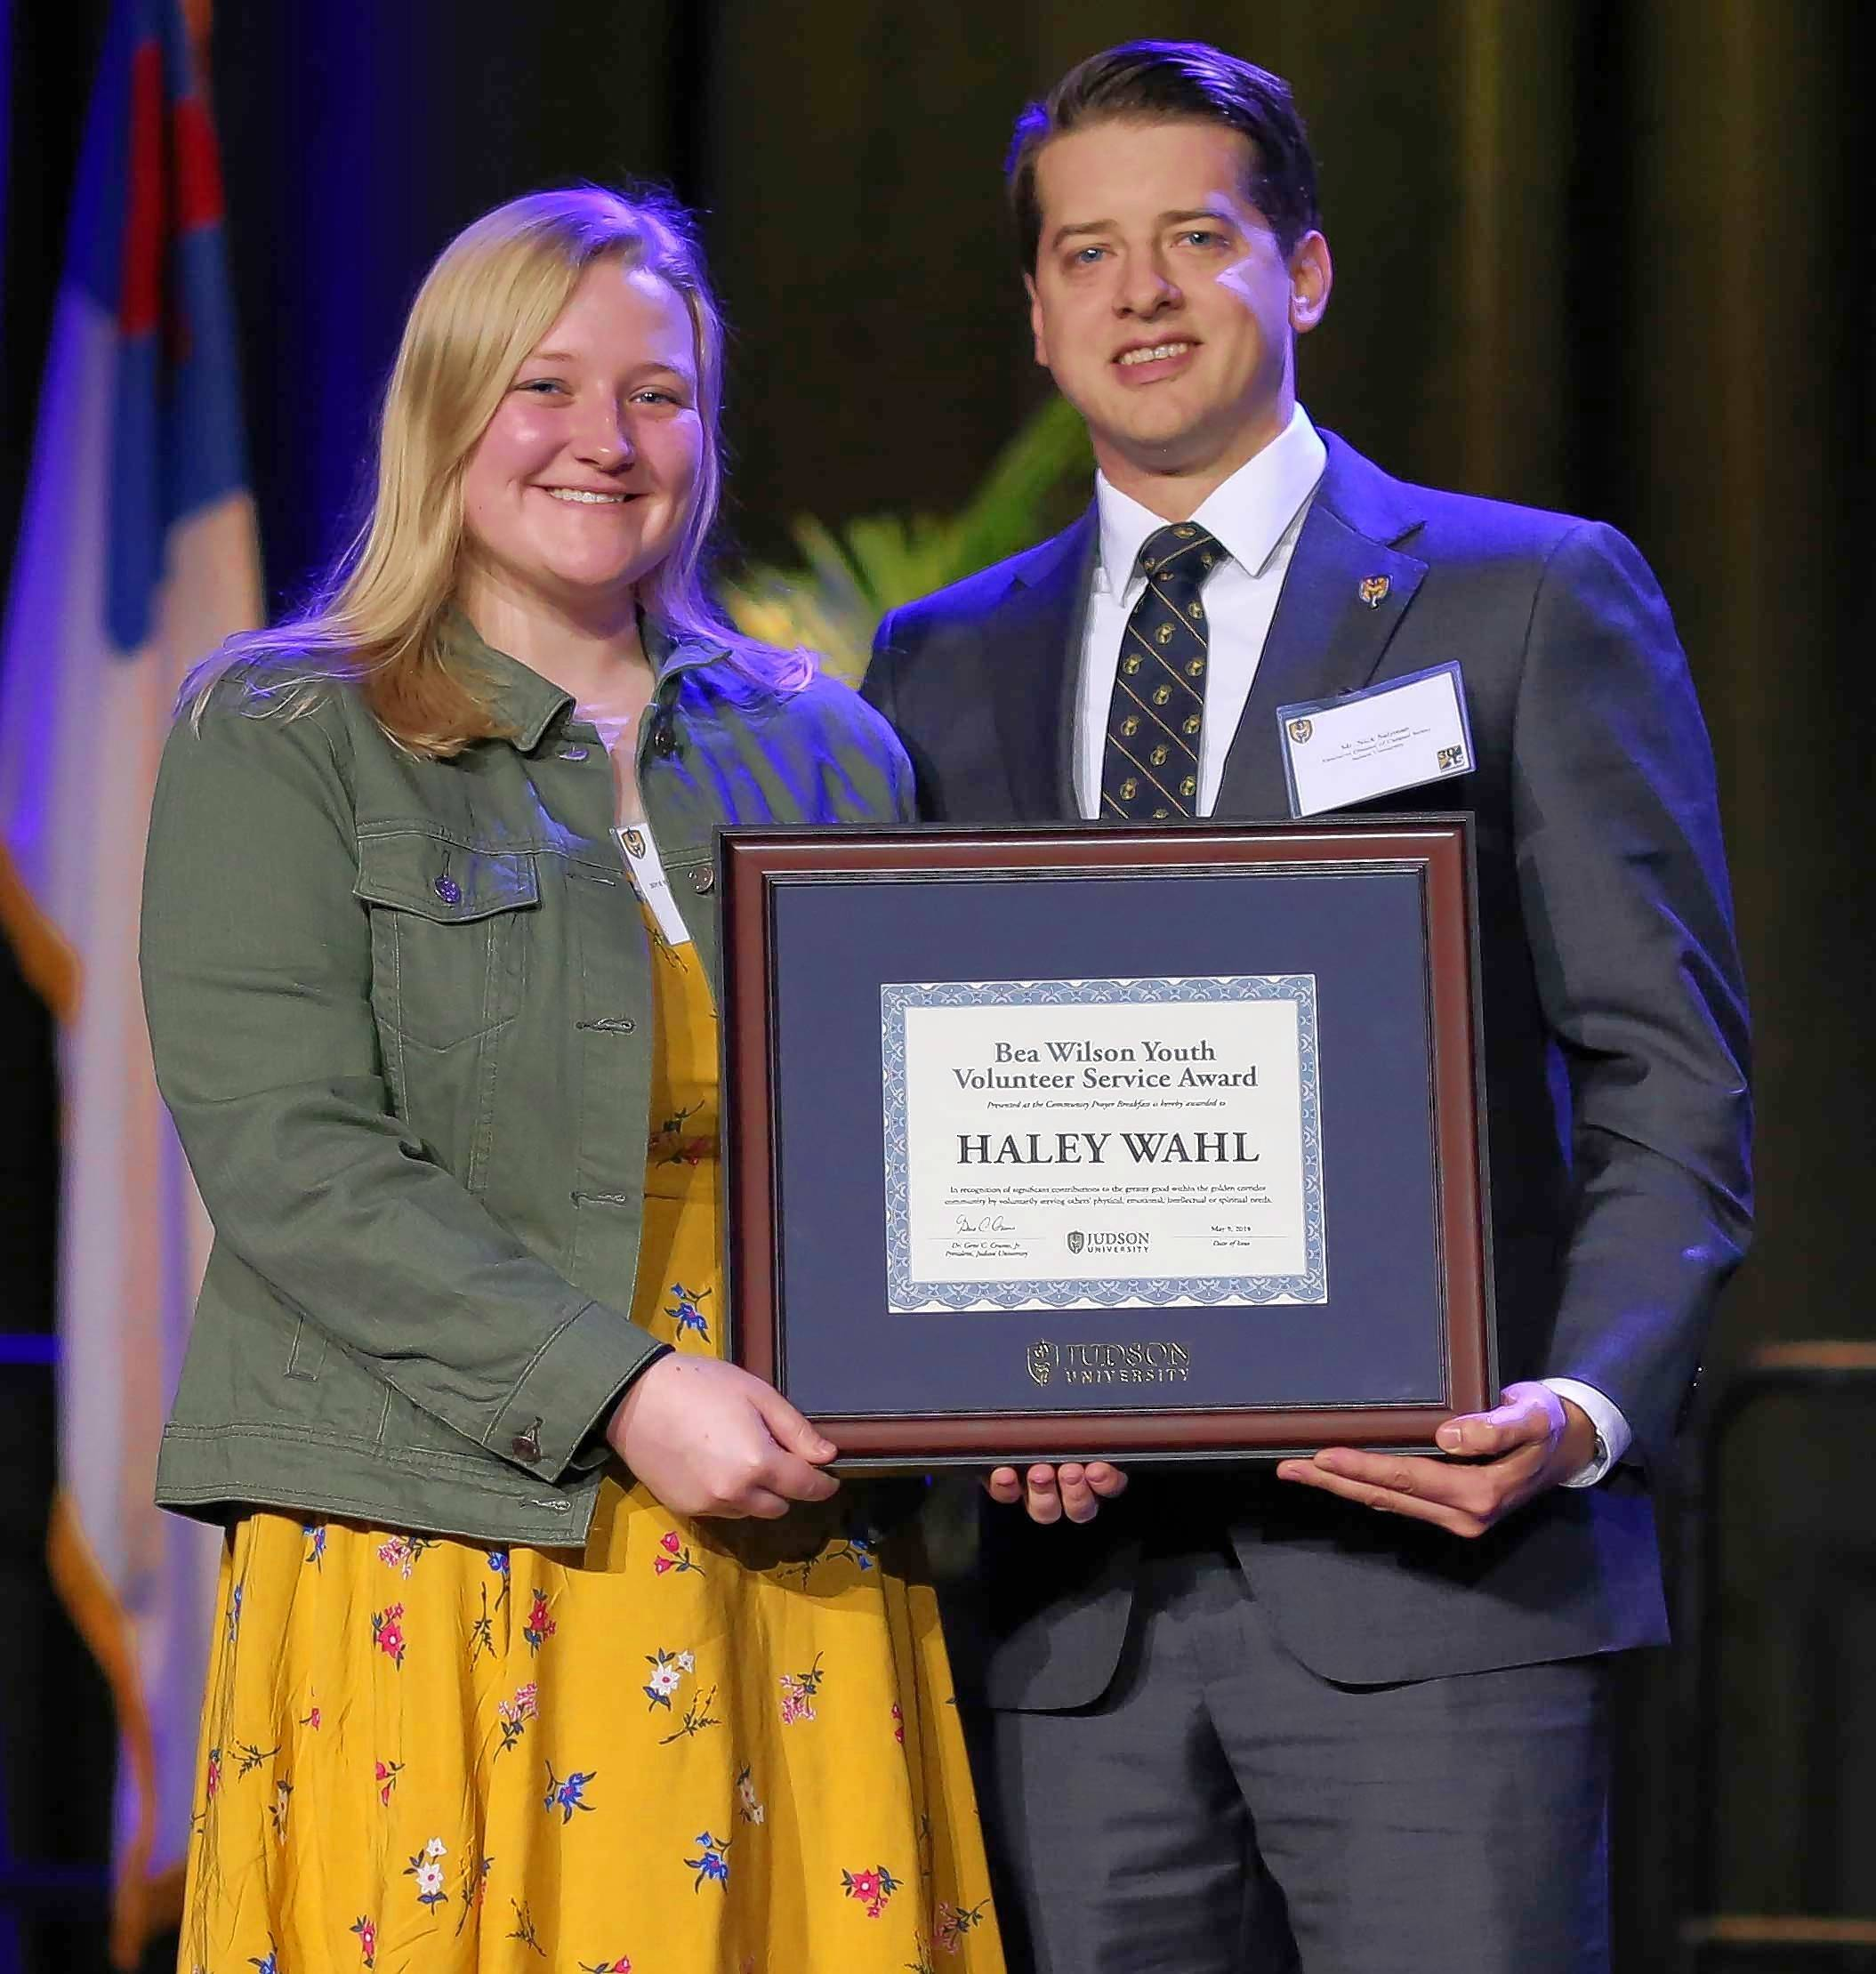 In 2018, Judson University gave the Bea Wilson Youth Award to Elgin High School student Haley Wahl.